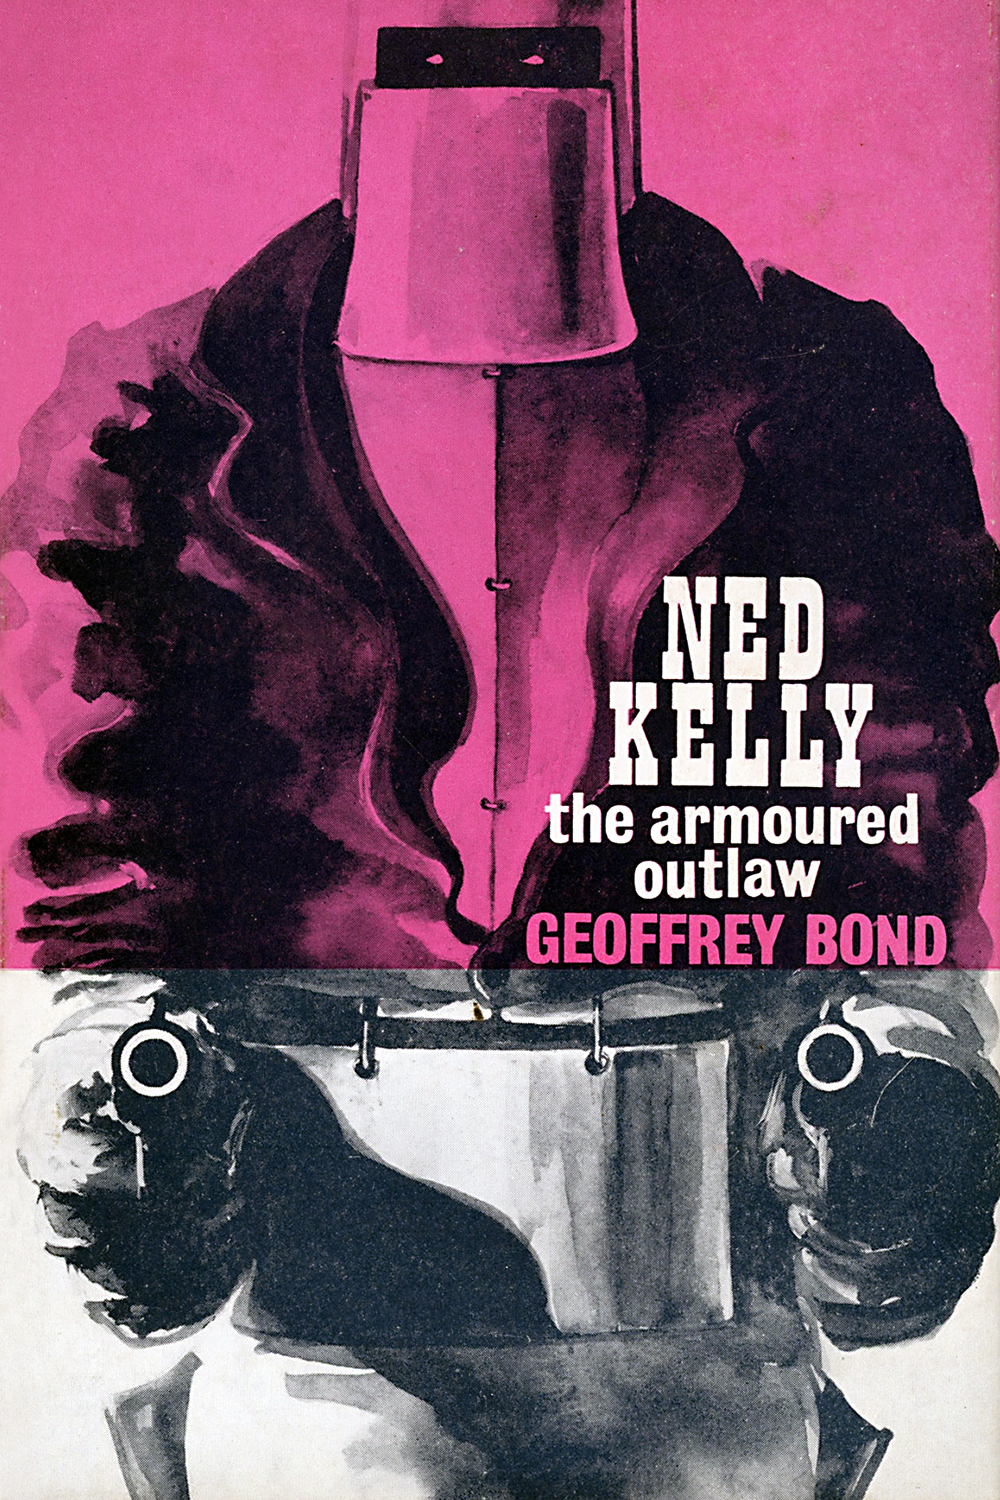 Ned Kelly: The Armoured Outlaw by Geoffrey Bond